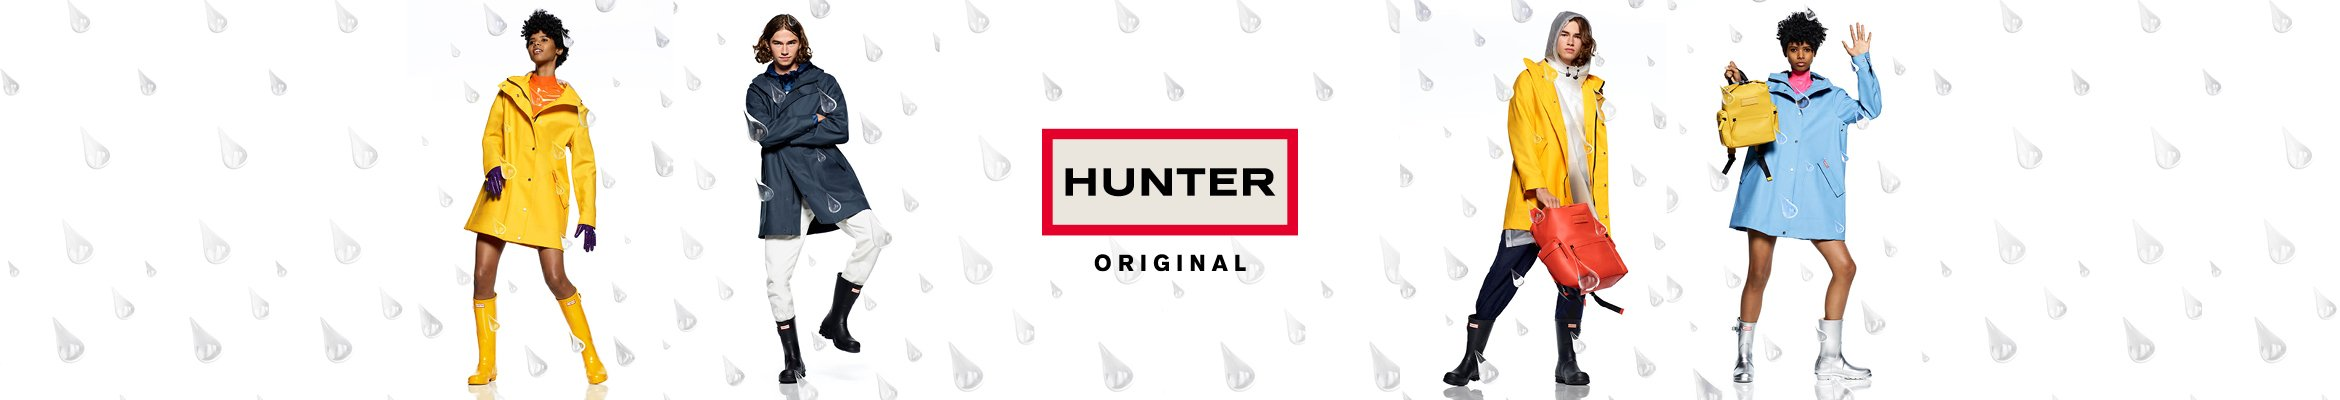 Banner Boozt Hunter Aw18